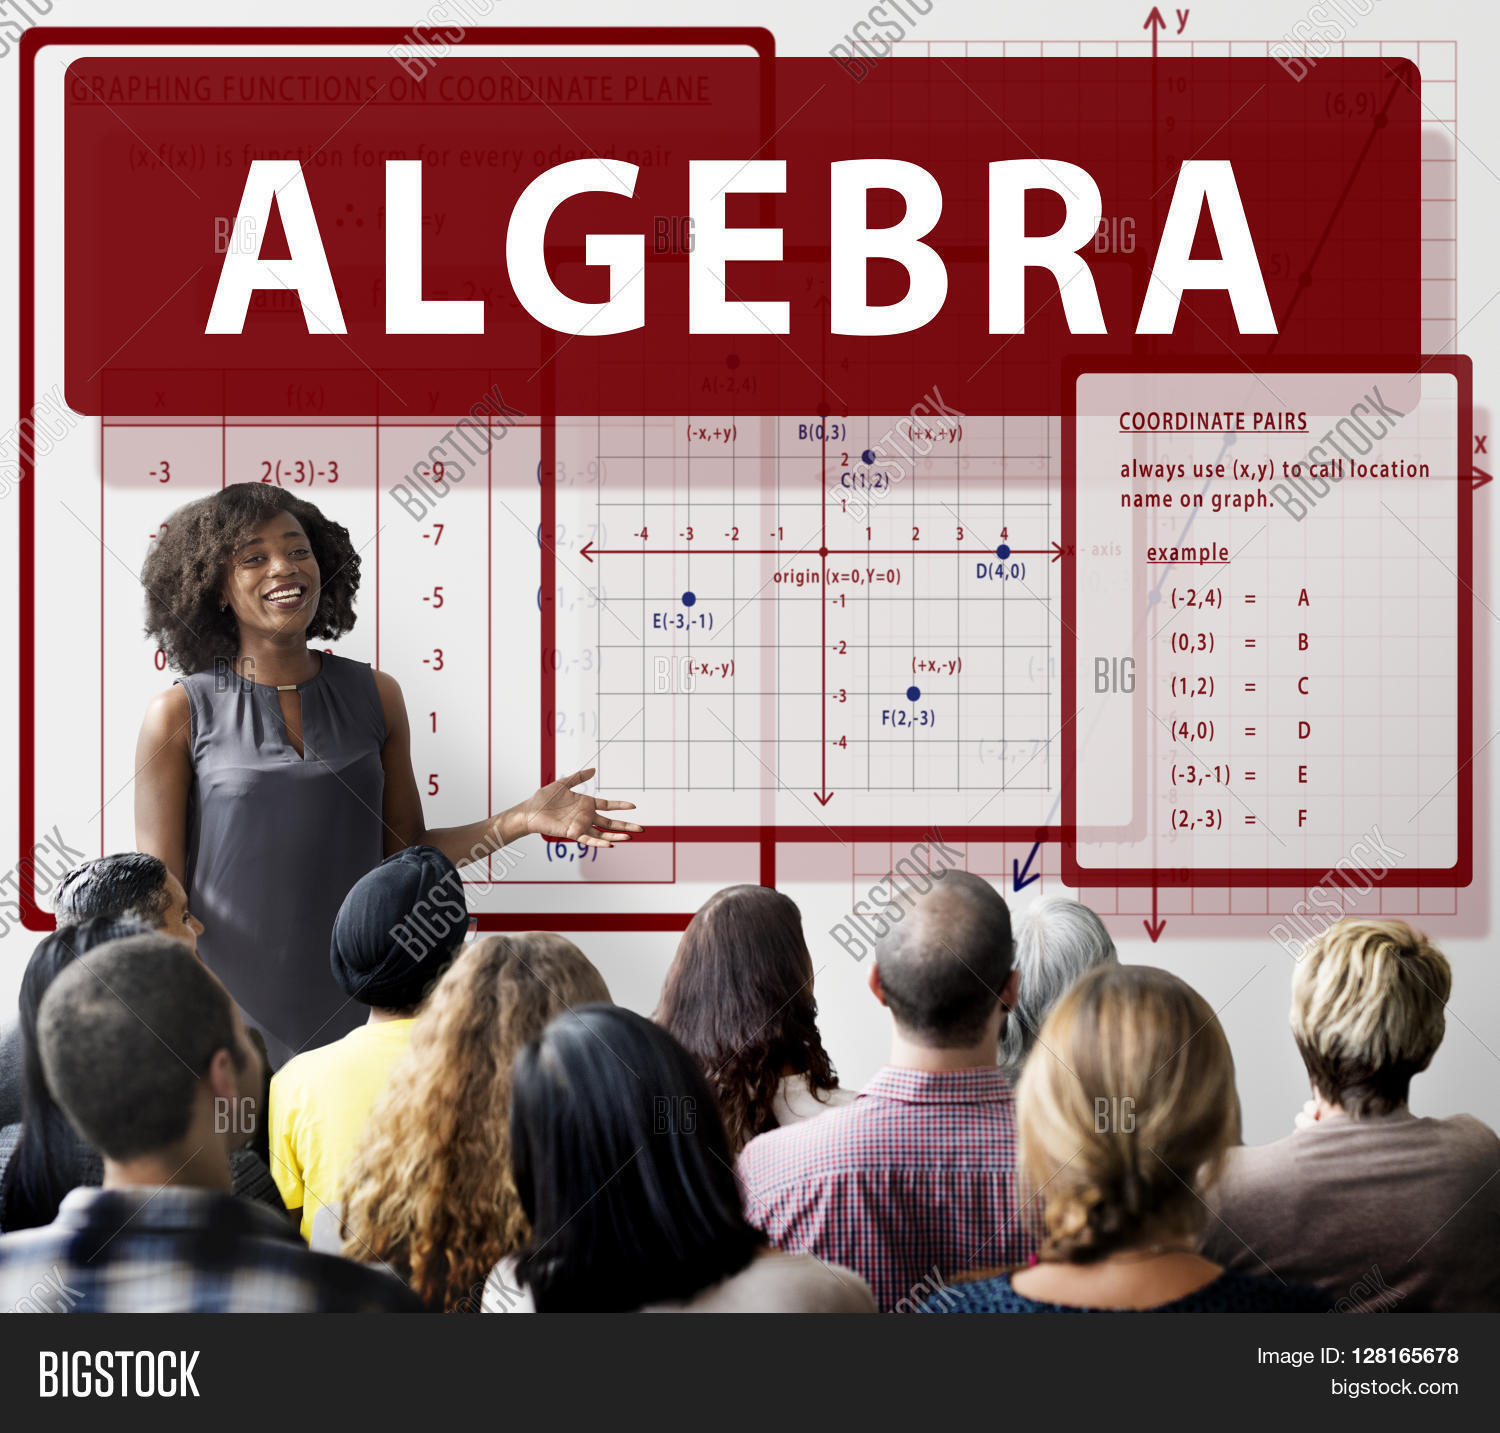 african,algebra,calculate,calculation,chart,coach,complex,complicated,conference,coordinate,descen,diverse,diversity,educate,education,equation,exam,formula,group,leadership,learn,lesson,math,mathematics,meeting,men,multiethnic,number,of,pairs,pattern,people,problem,seminar,sign,solution,theory,trainee,trainer,training,trigonometry,woman,women